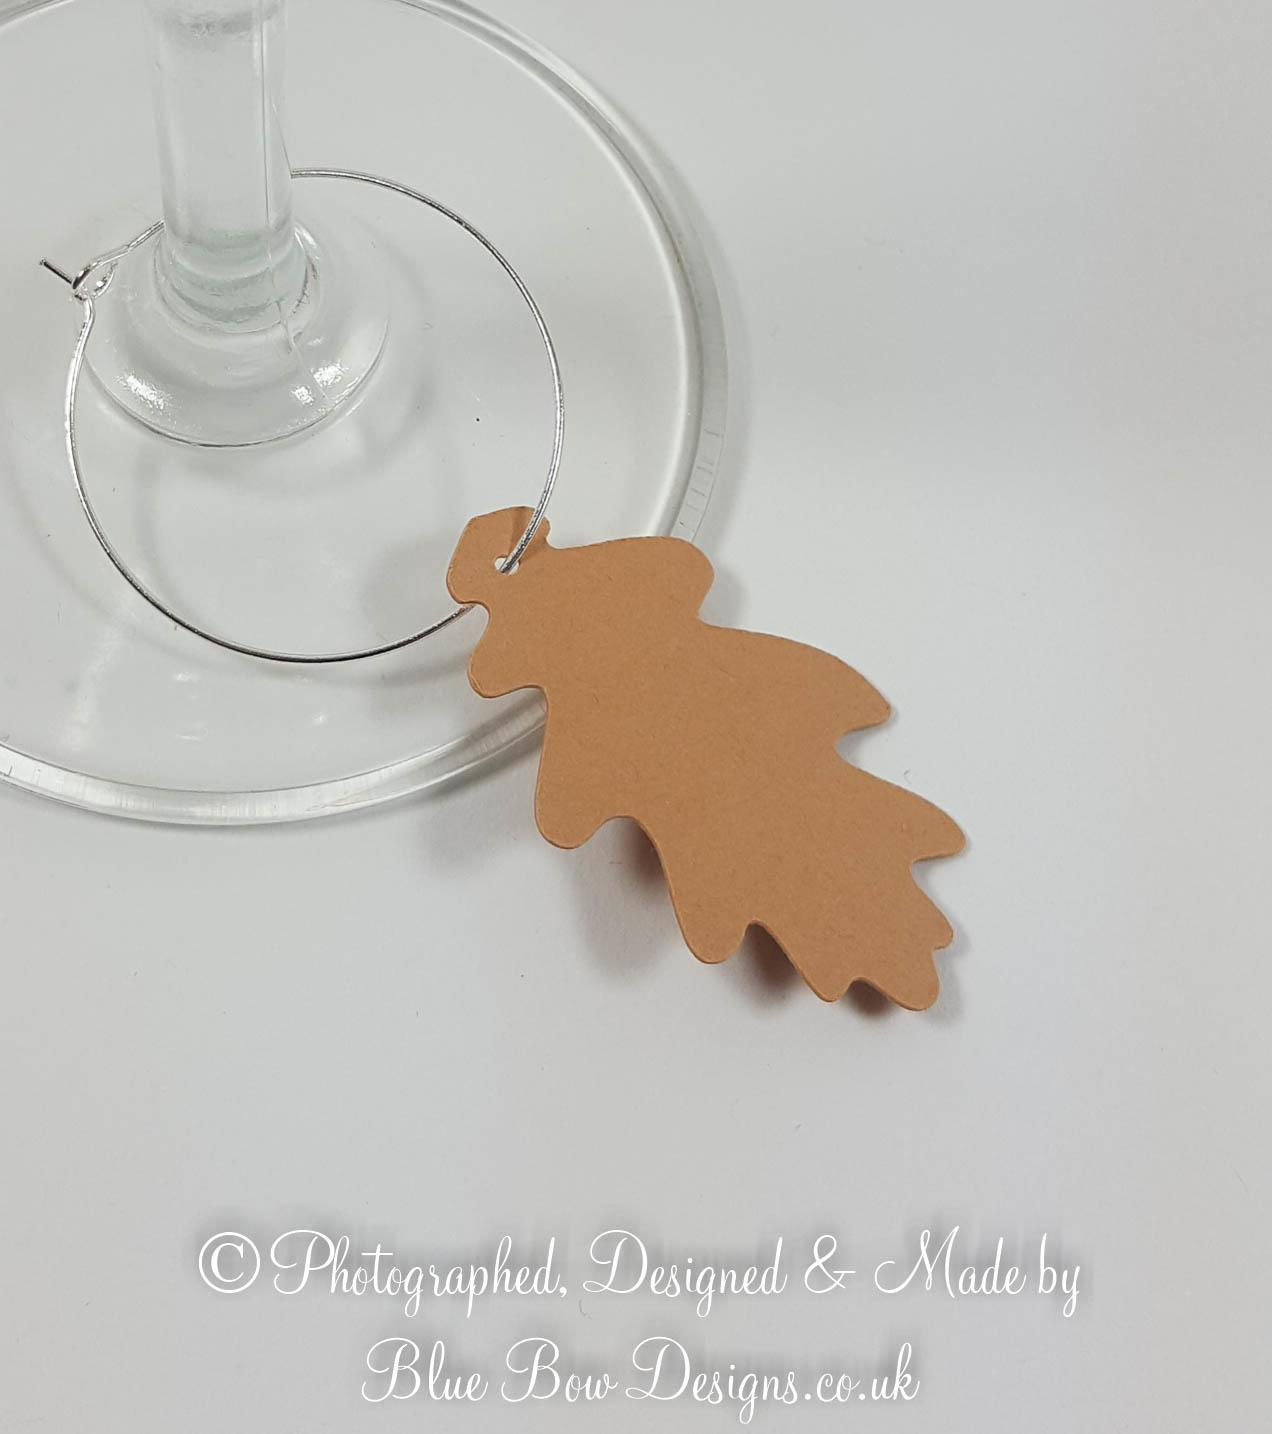 Card oak leaf wine glass charm